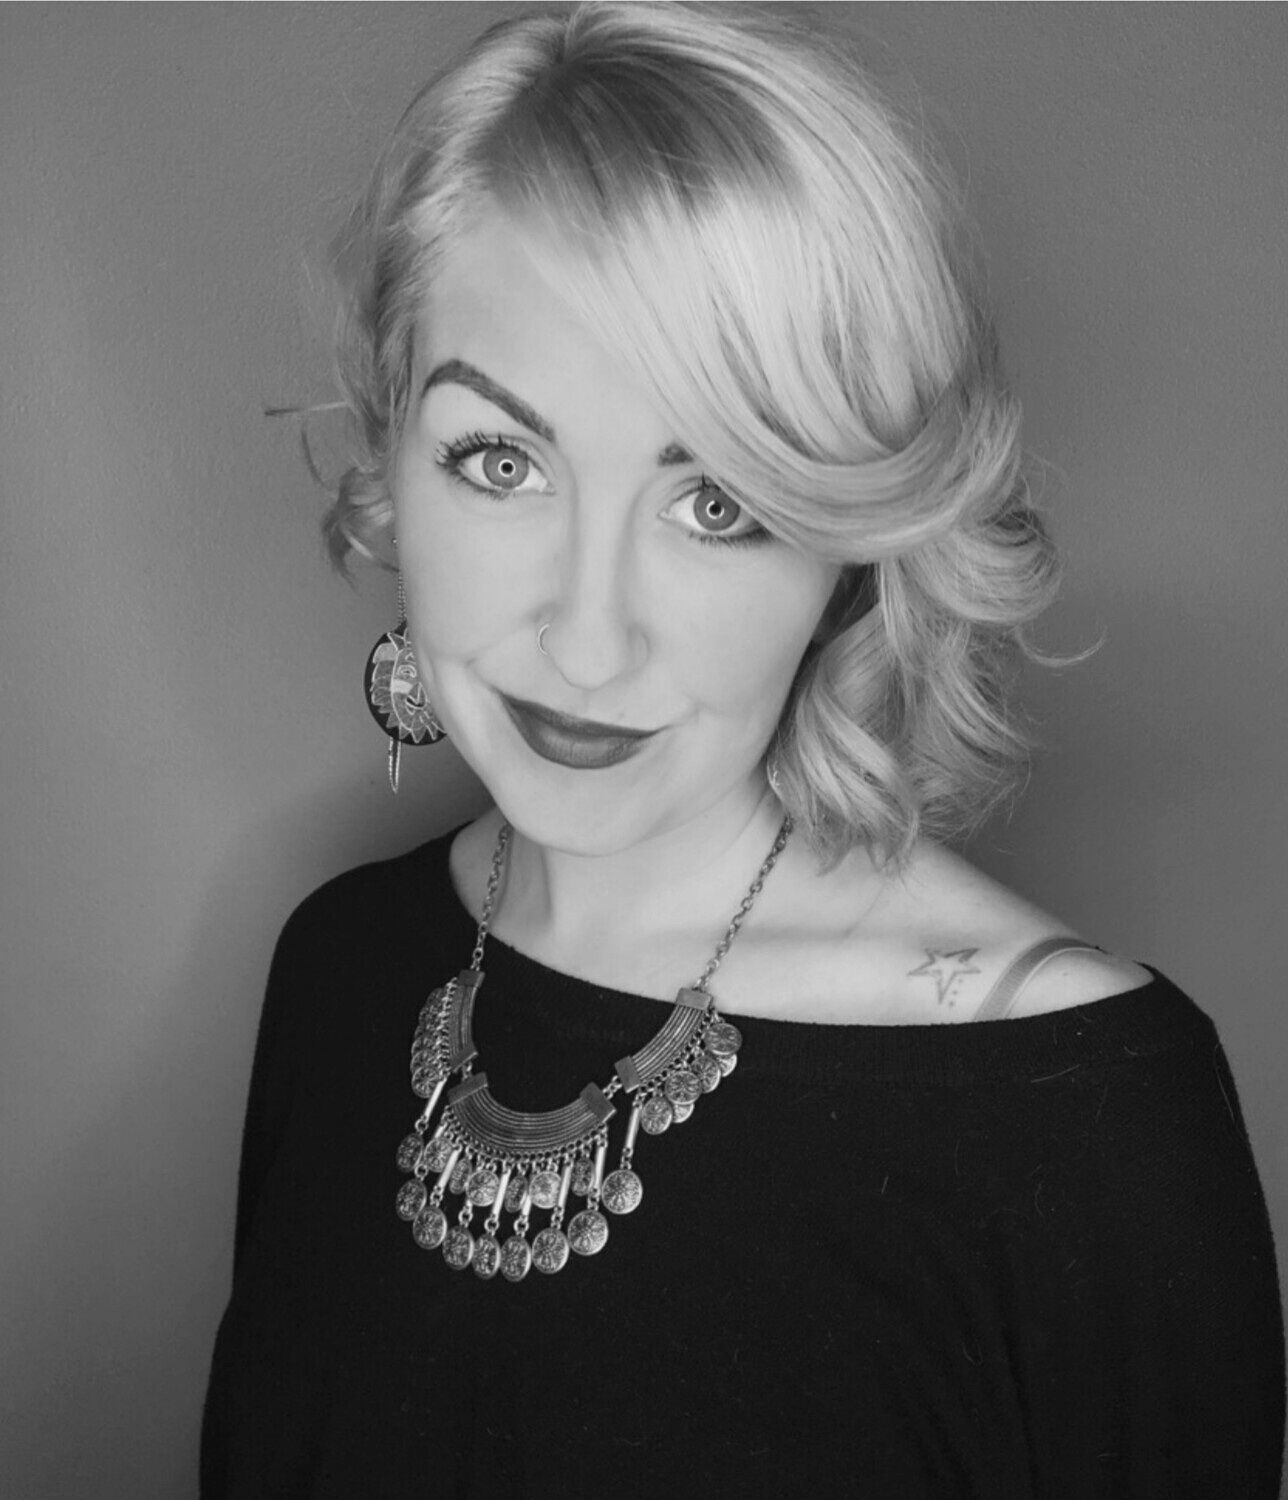 Sundaystaffspotlight we are featuring our Esthetician and